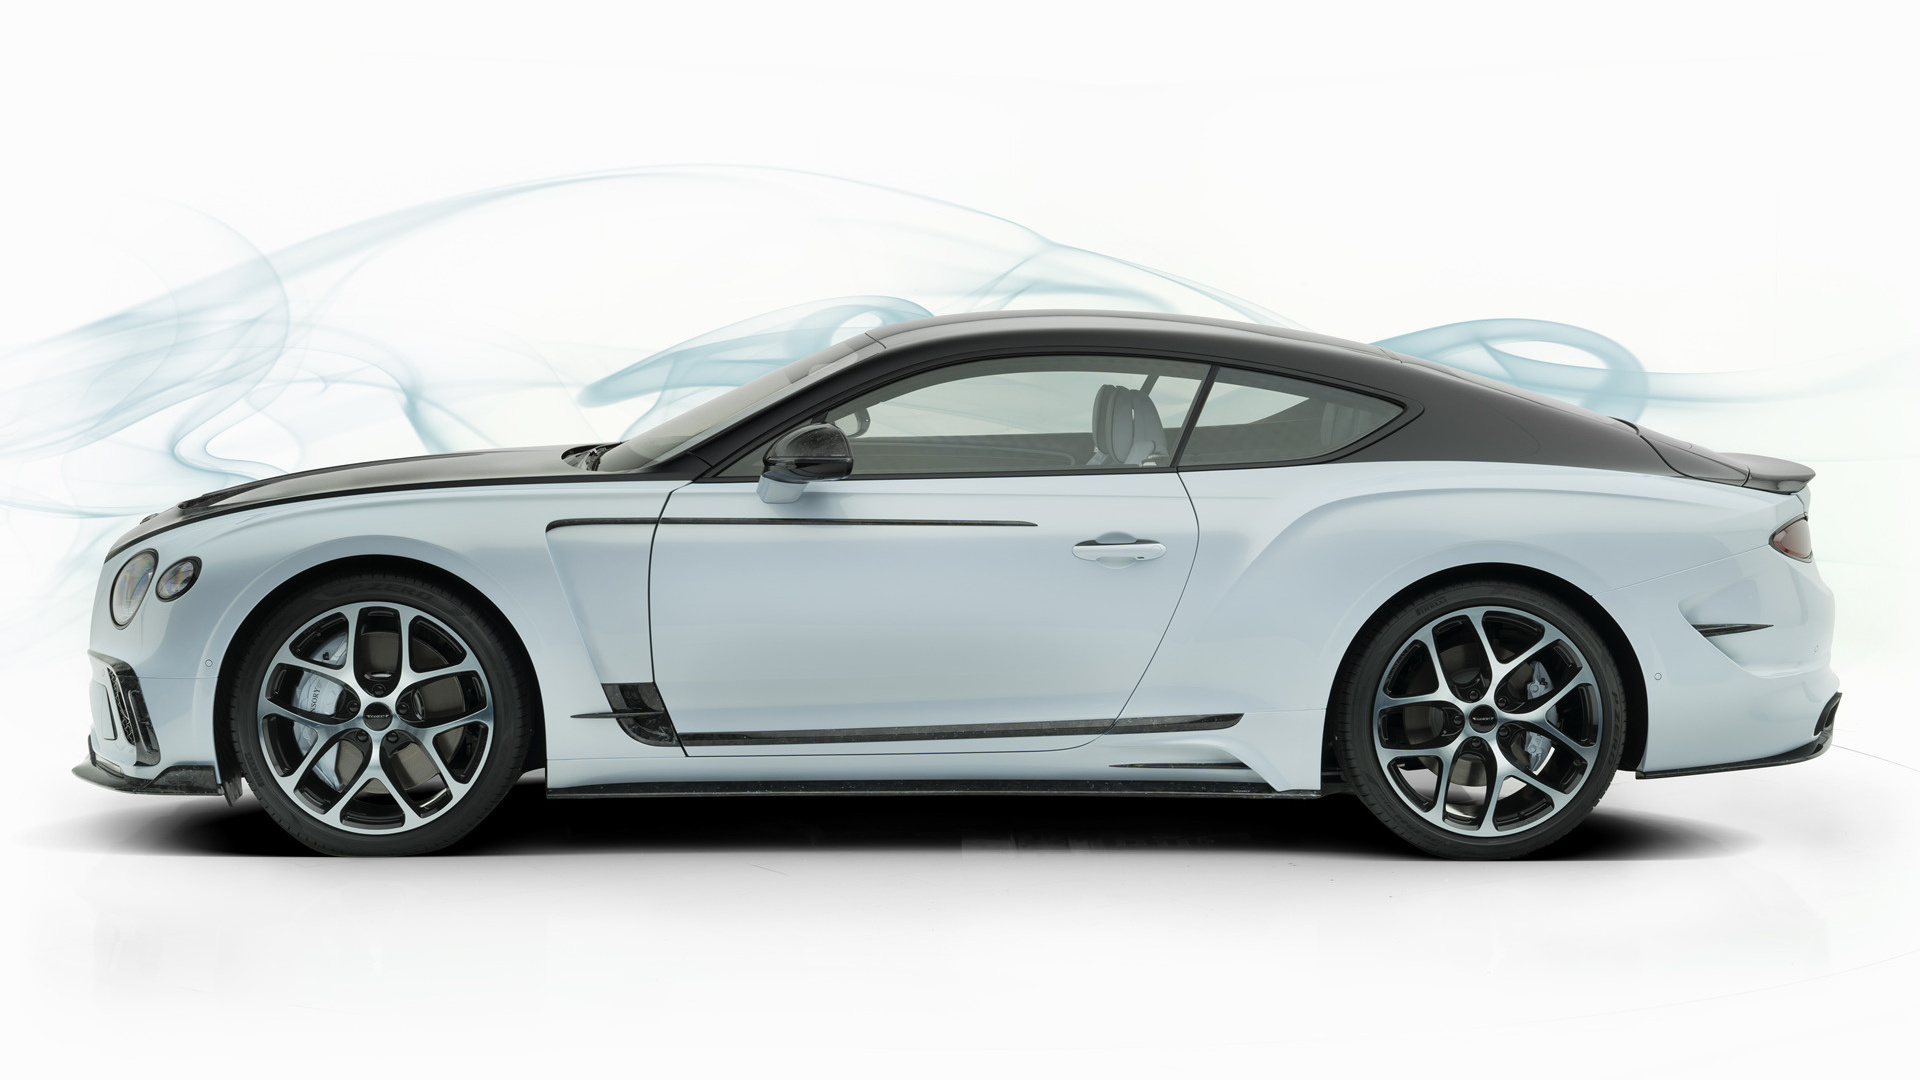 2019 Bentley Continental Gt By Mansory Wallpapers And Hd